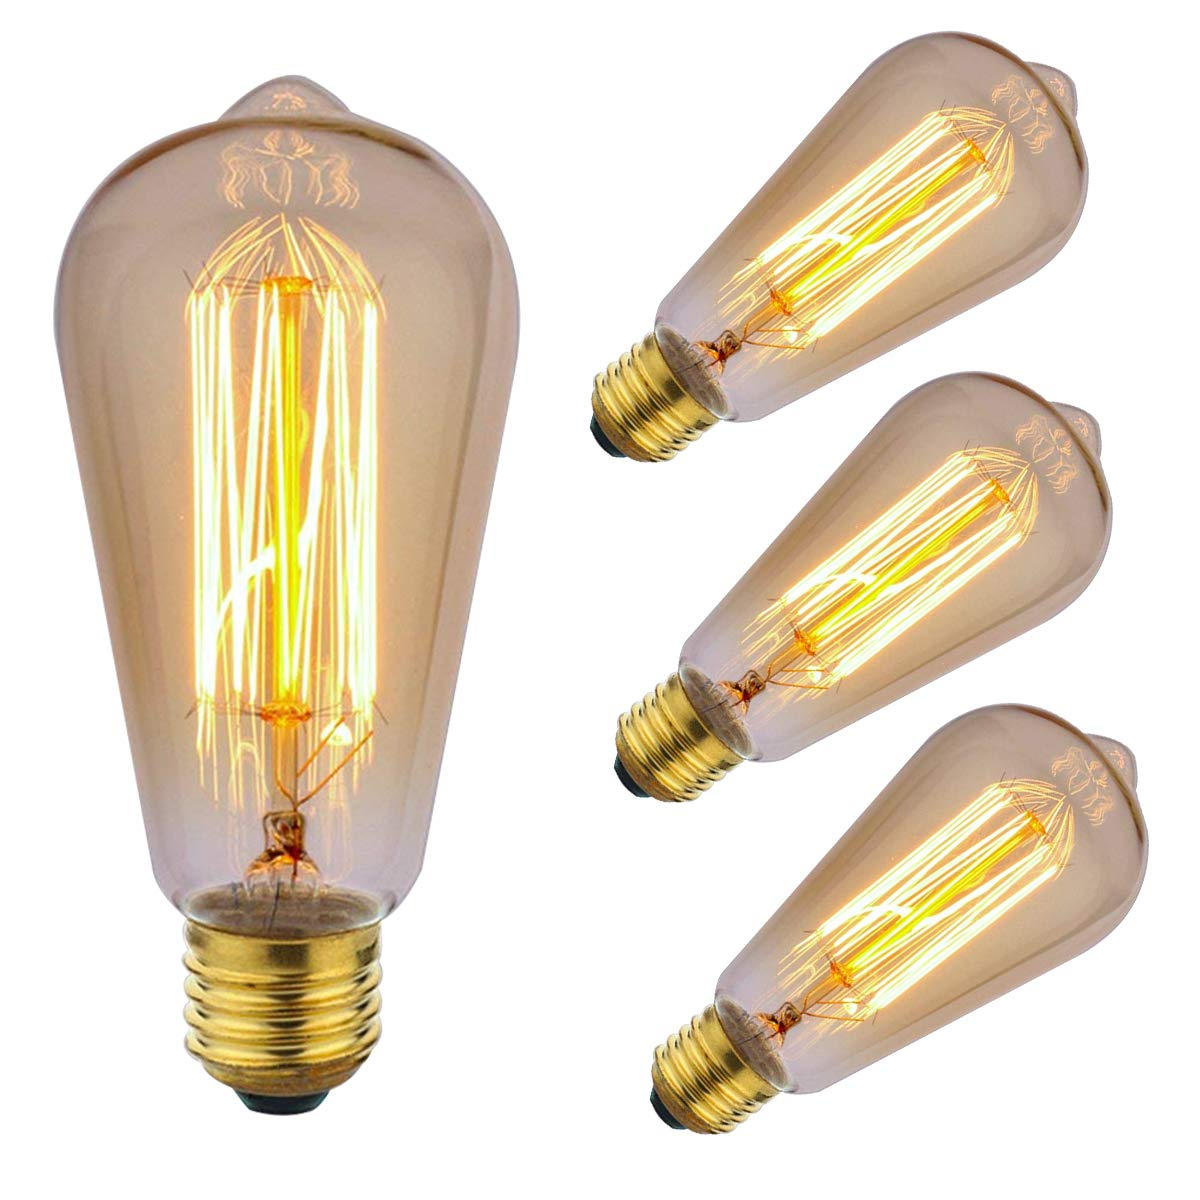 ZOOVQI LED Edison Bulbs 60W E27 Dimmable Vintage Light Bulbs ST64 2200K Warm White Incandescent Bulbs for Home Light Lamp Fixtures (4 Pack)